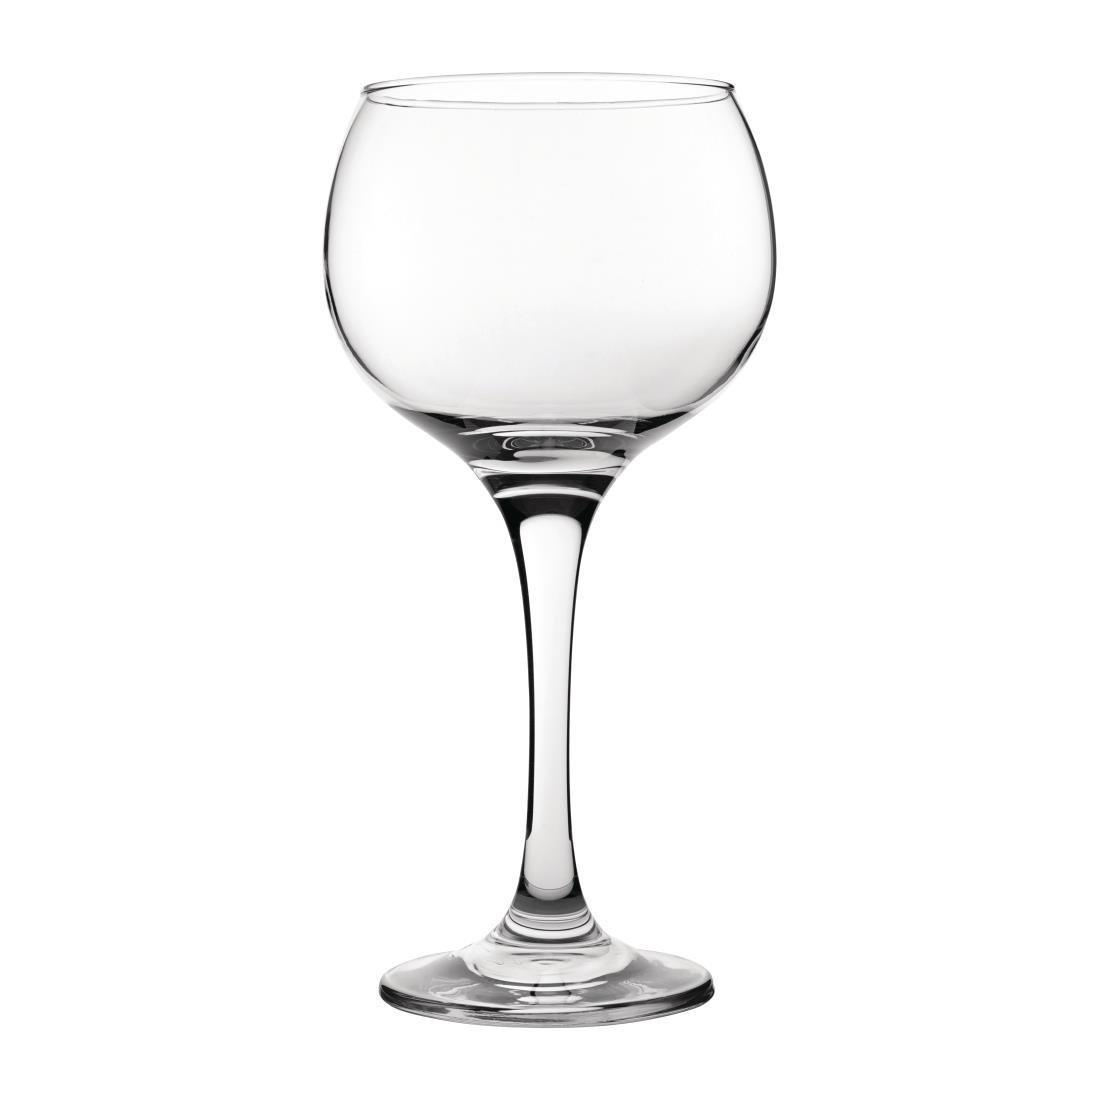 Utopia Ambassador Gin Glass - 560ml 19 3/4oz (Box 6) - CS031